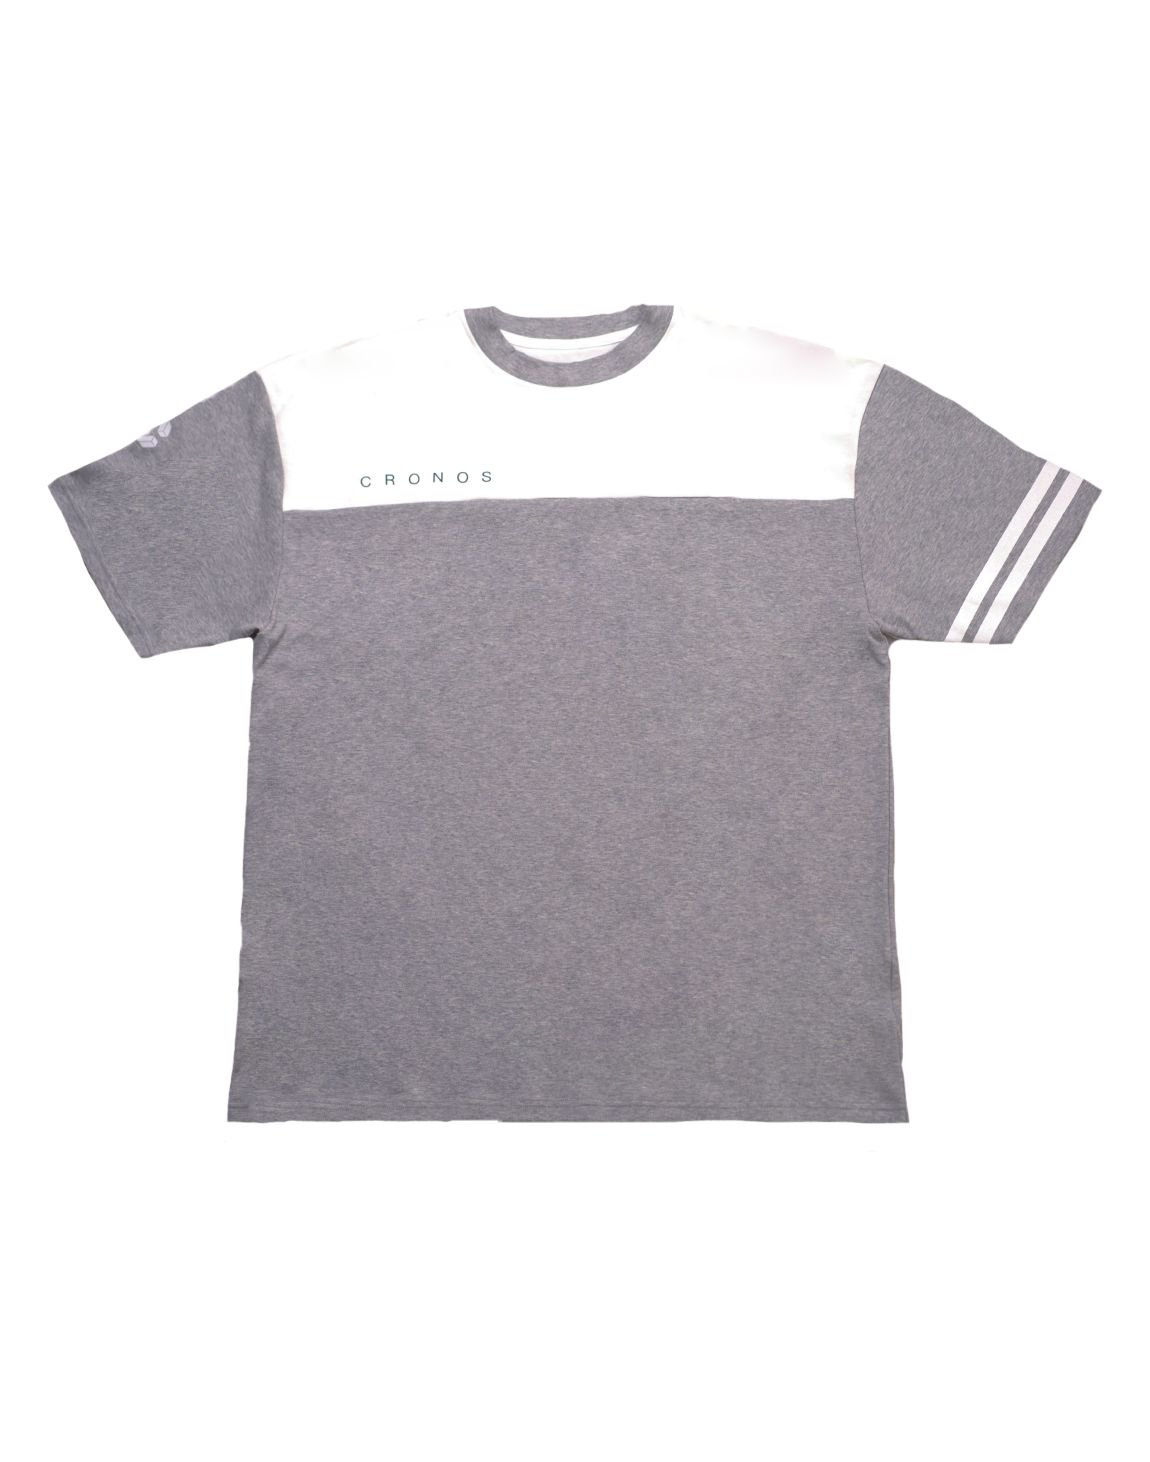 CRONOS Bi-COLOR SLEEVE LINE OVER SIZE T-SHIRTS【T.GRAY】